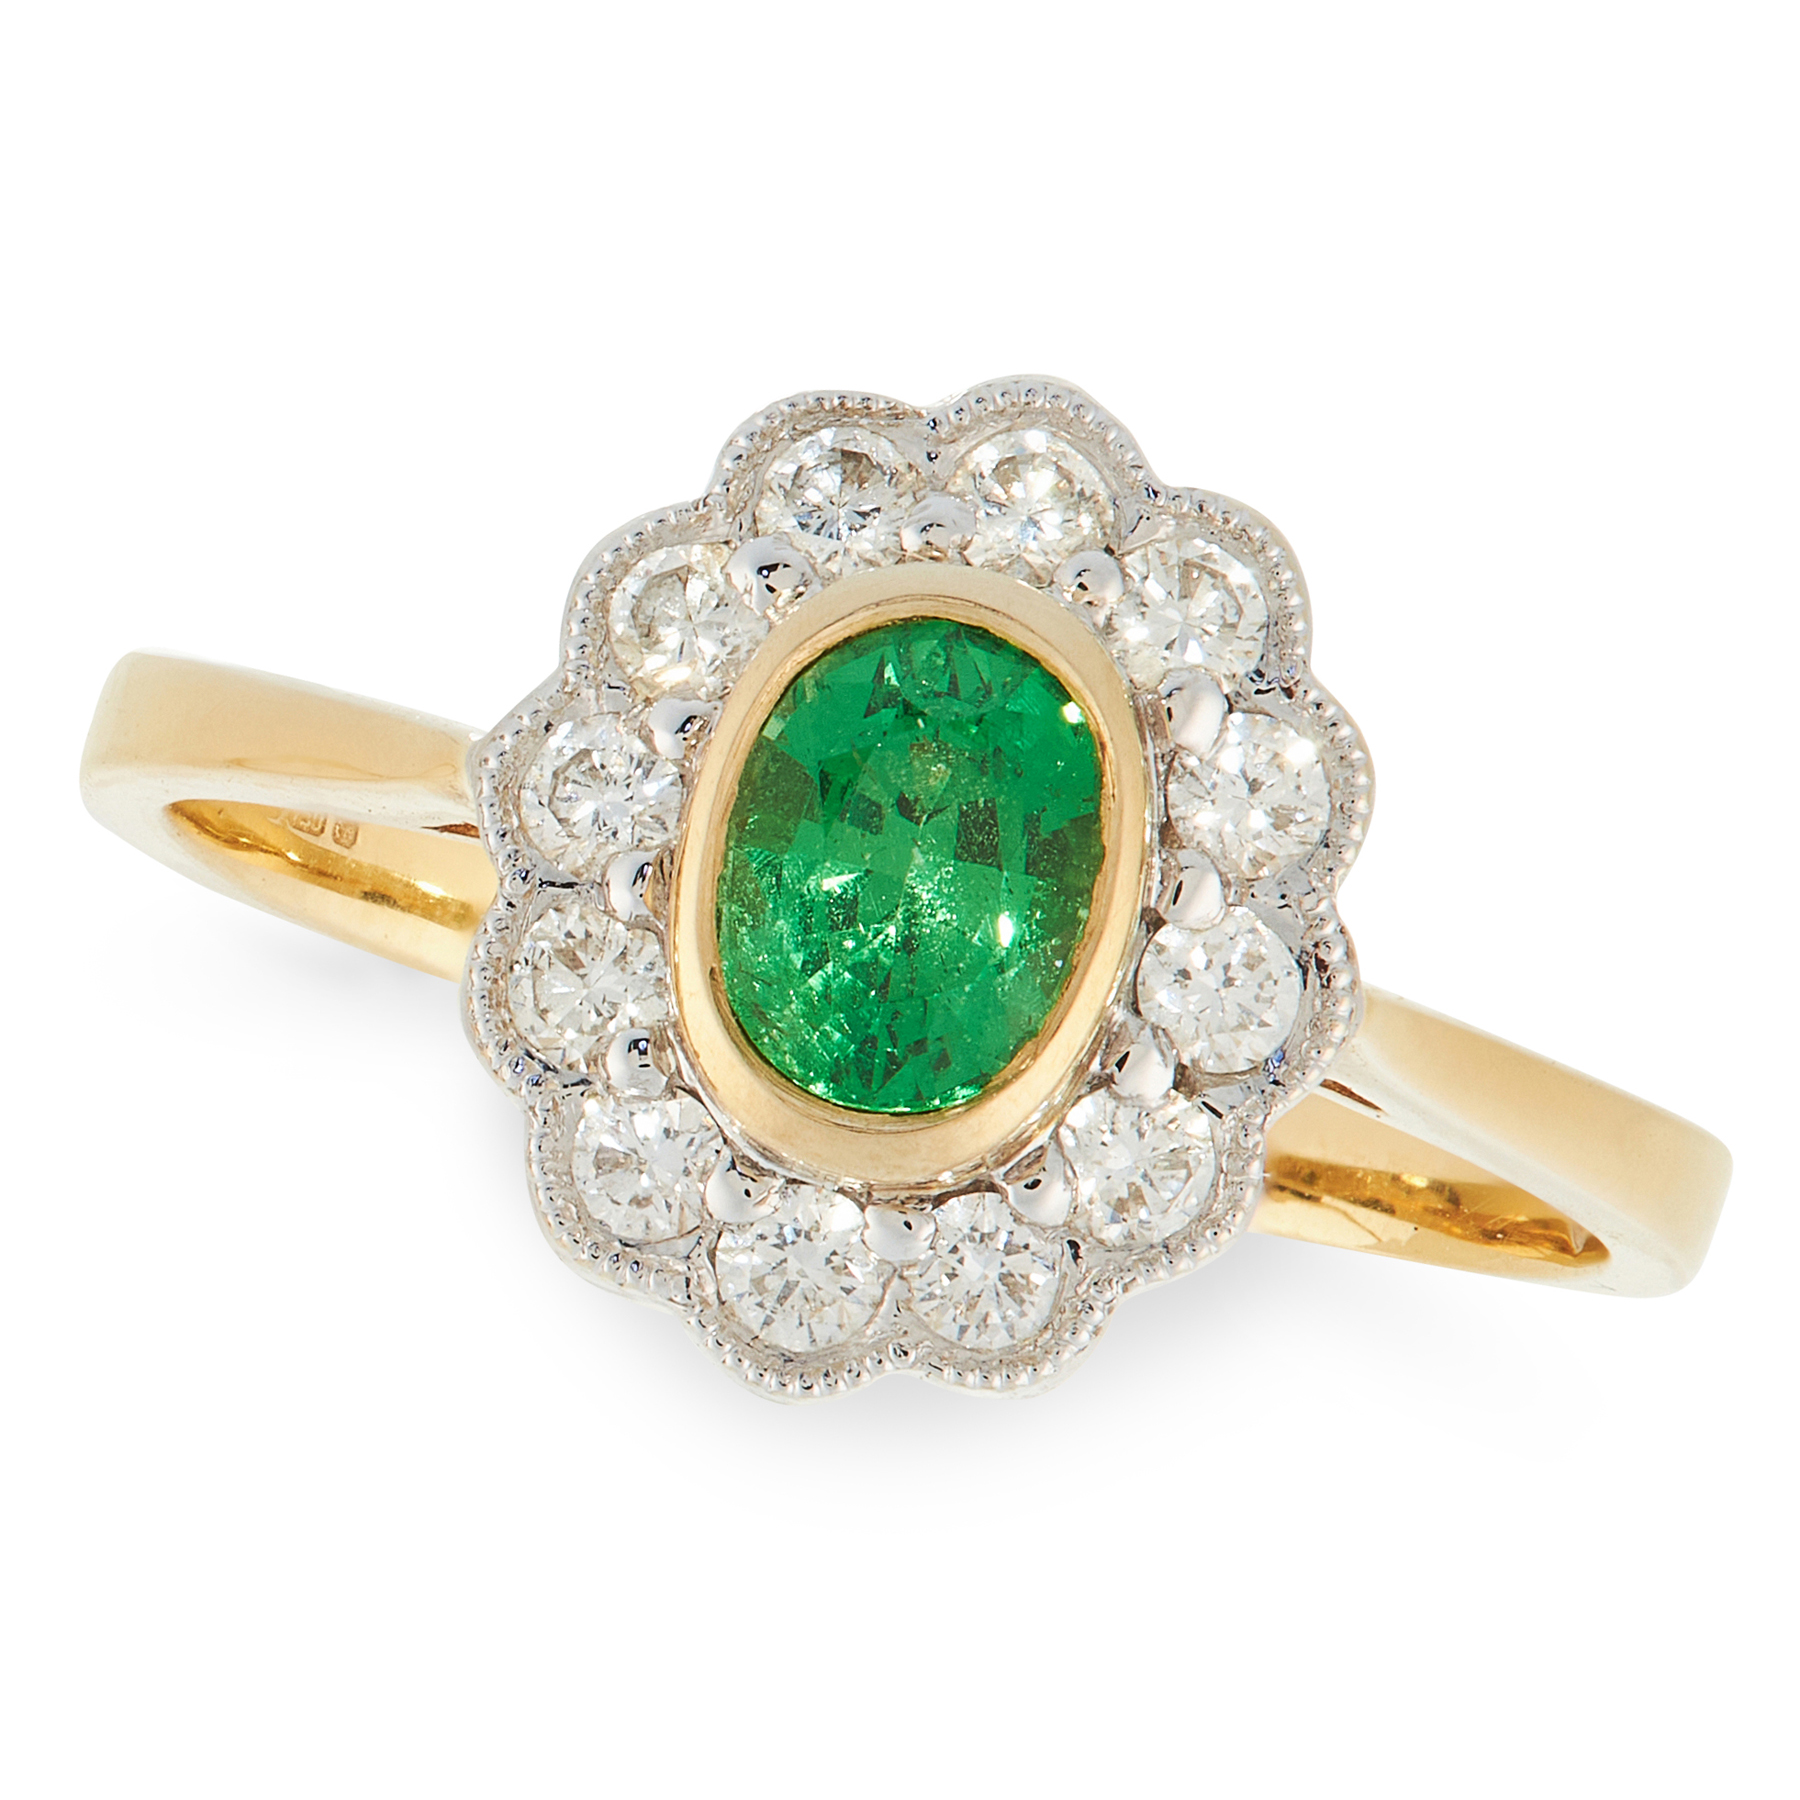 A GREEN GARNET AND DIAMOND DRESS RING in 18ct yellow gold, set with an oval cut green garnet - Image 2 of 2